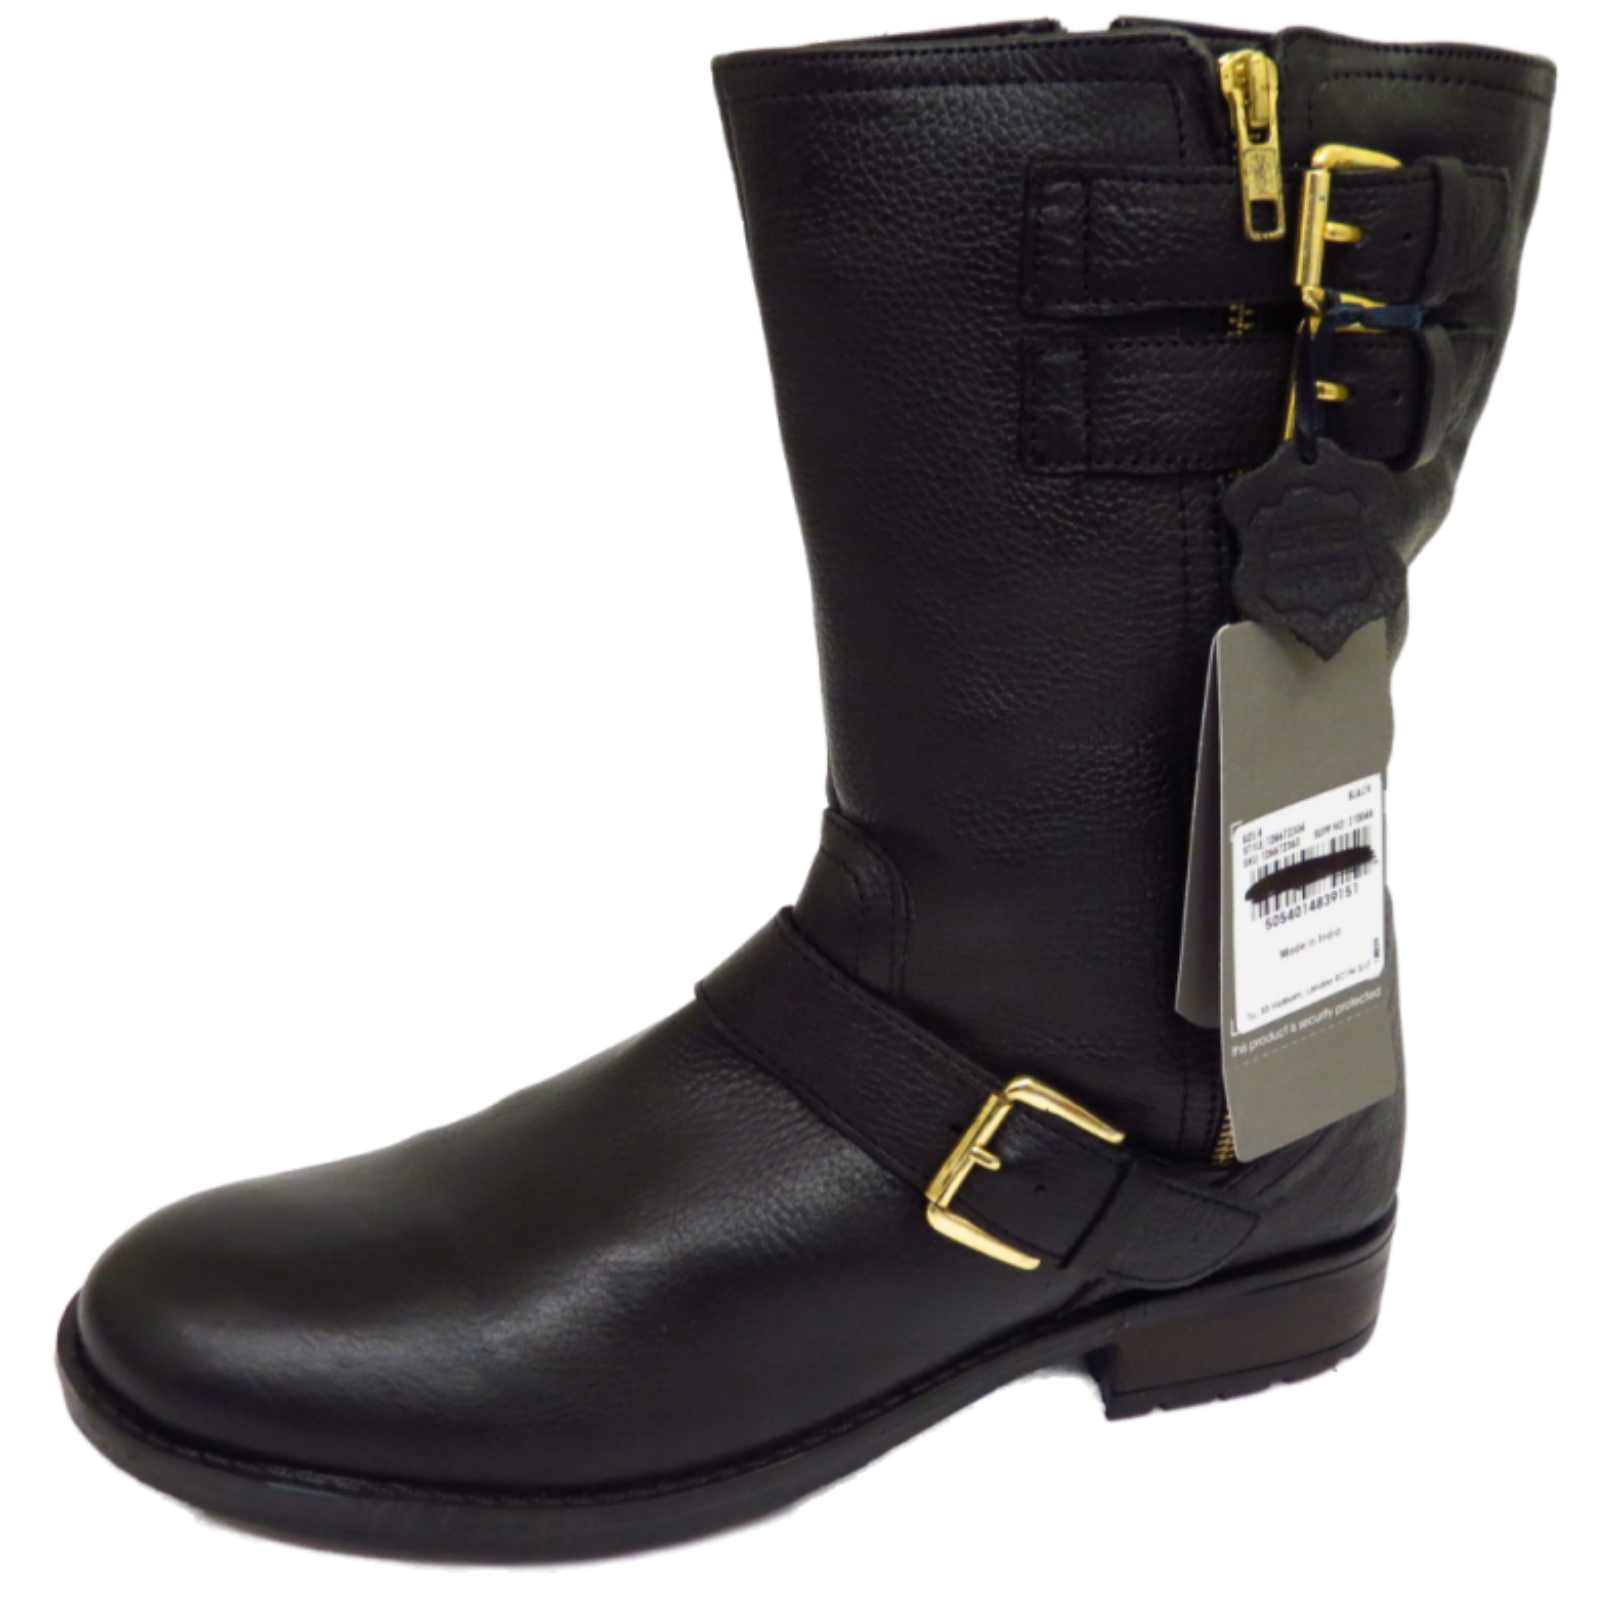 Motorcycle Boots Up To 50% Off | Free Shipping.